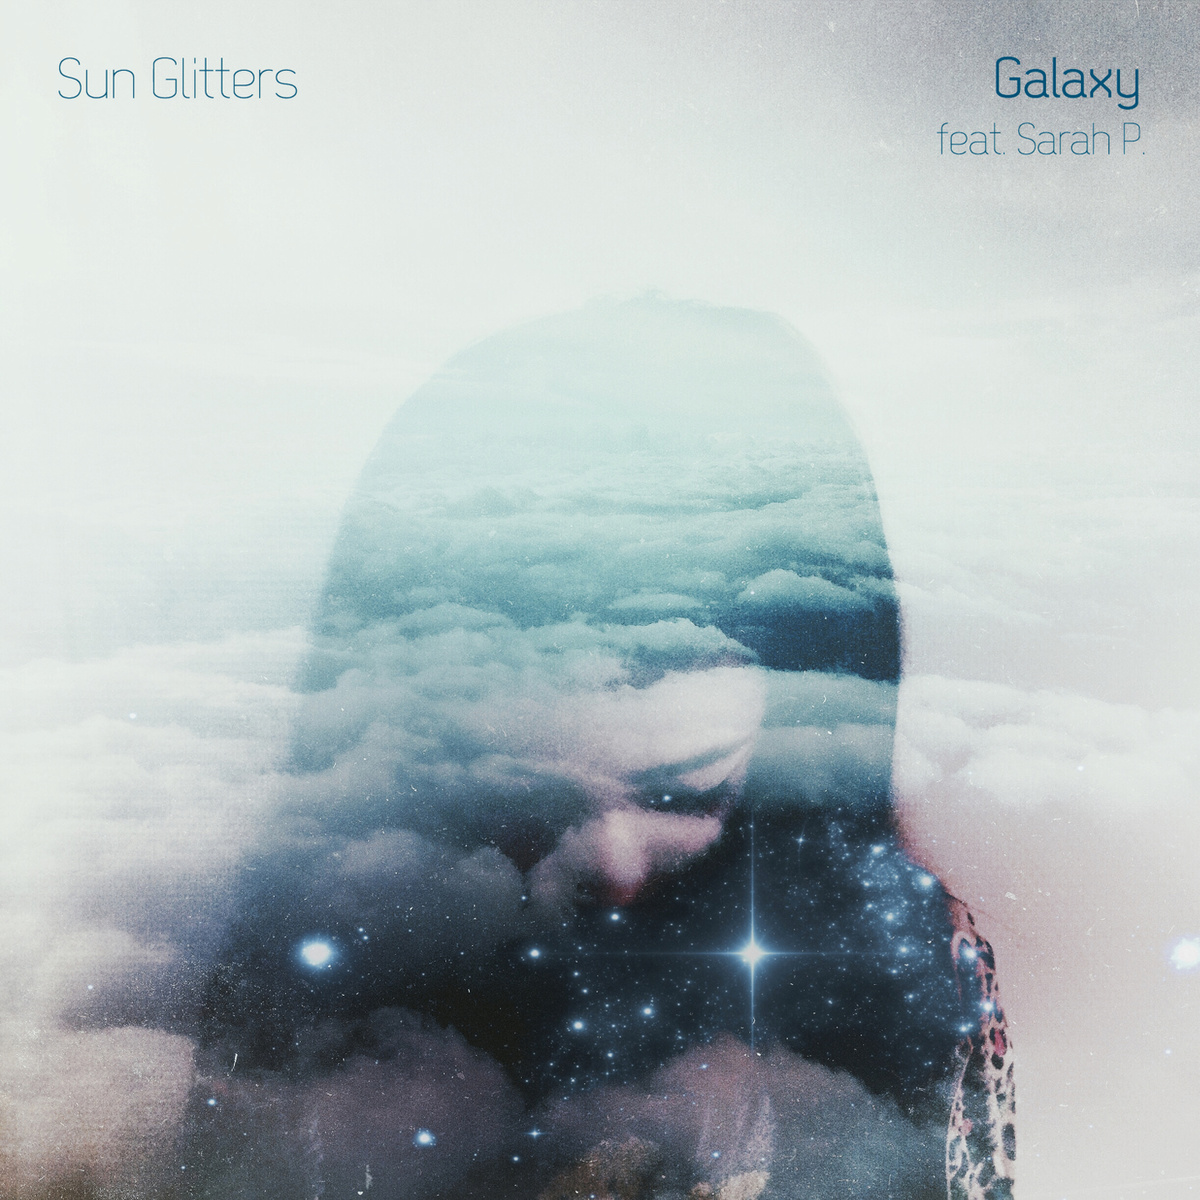 sunglitters-Galaxy